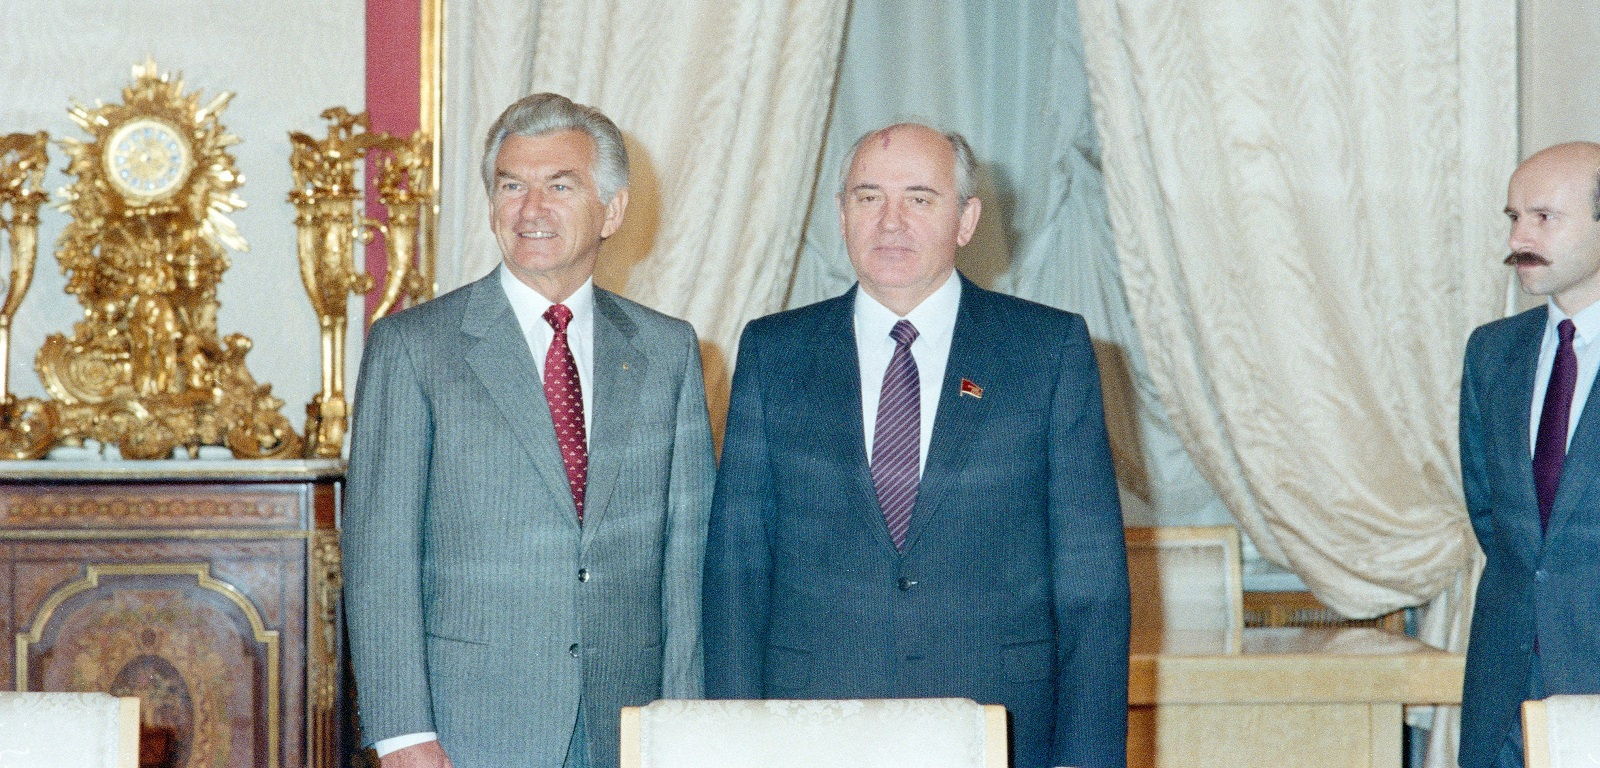 Bob Hawke with Mikeal Gorbachev in Moscow in 1987 (Photo: DFAT)